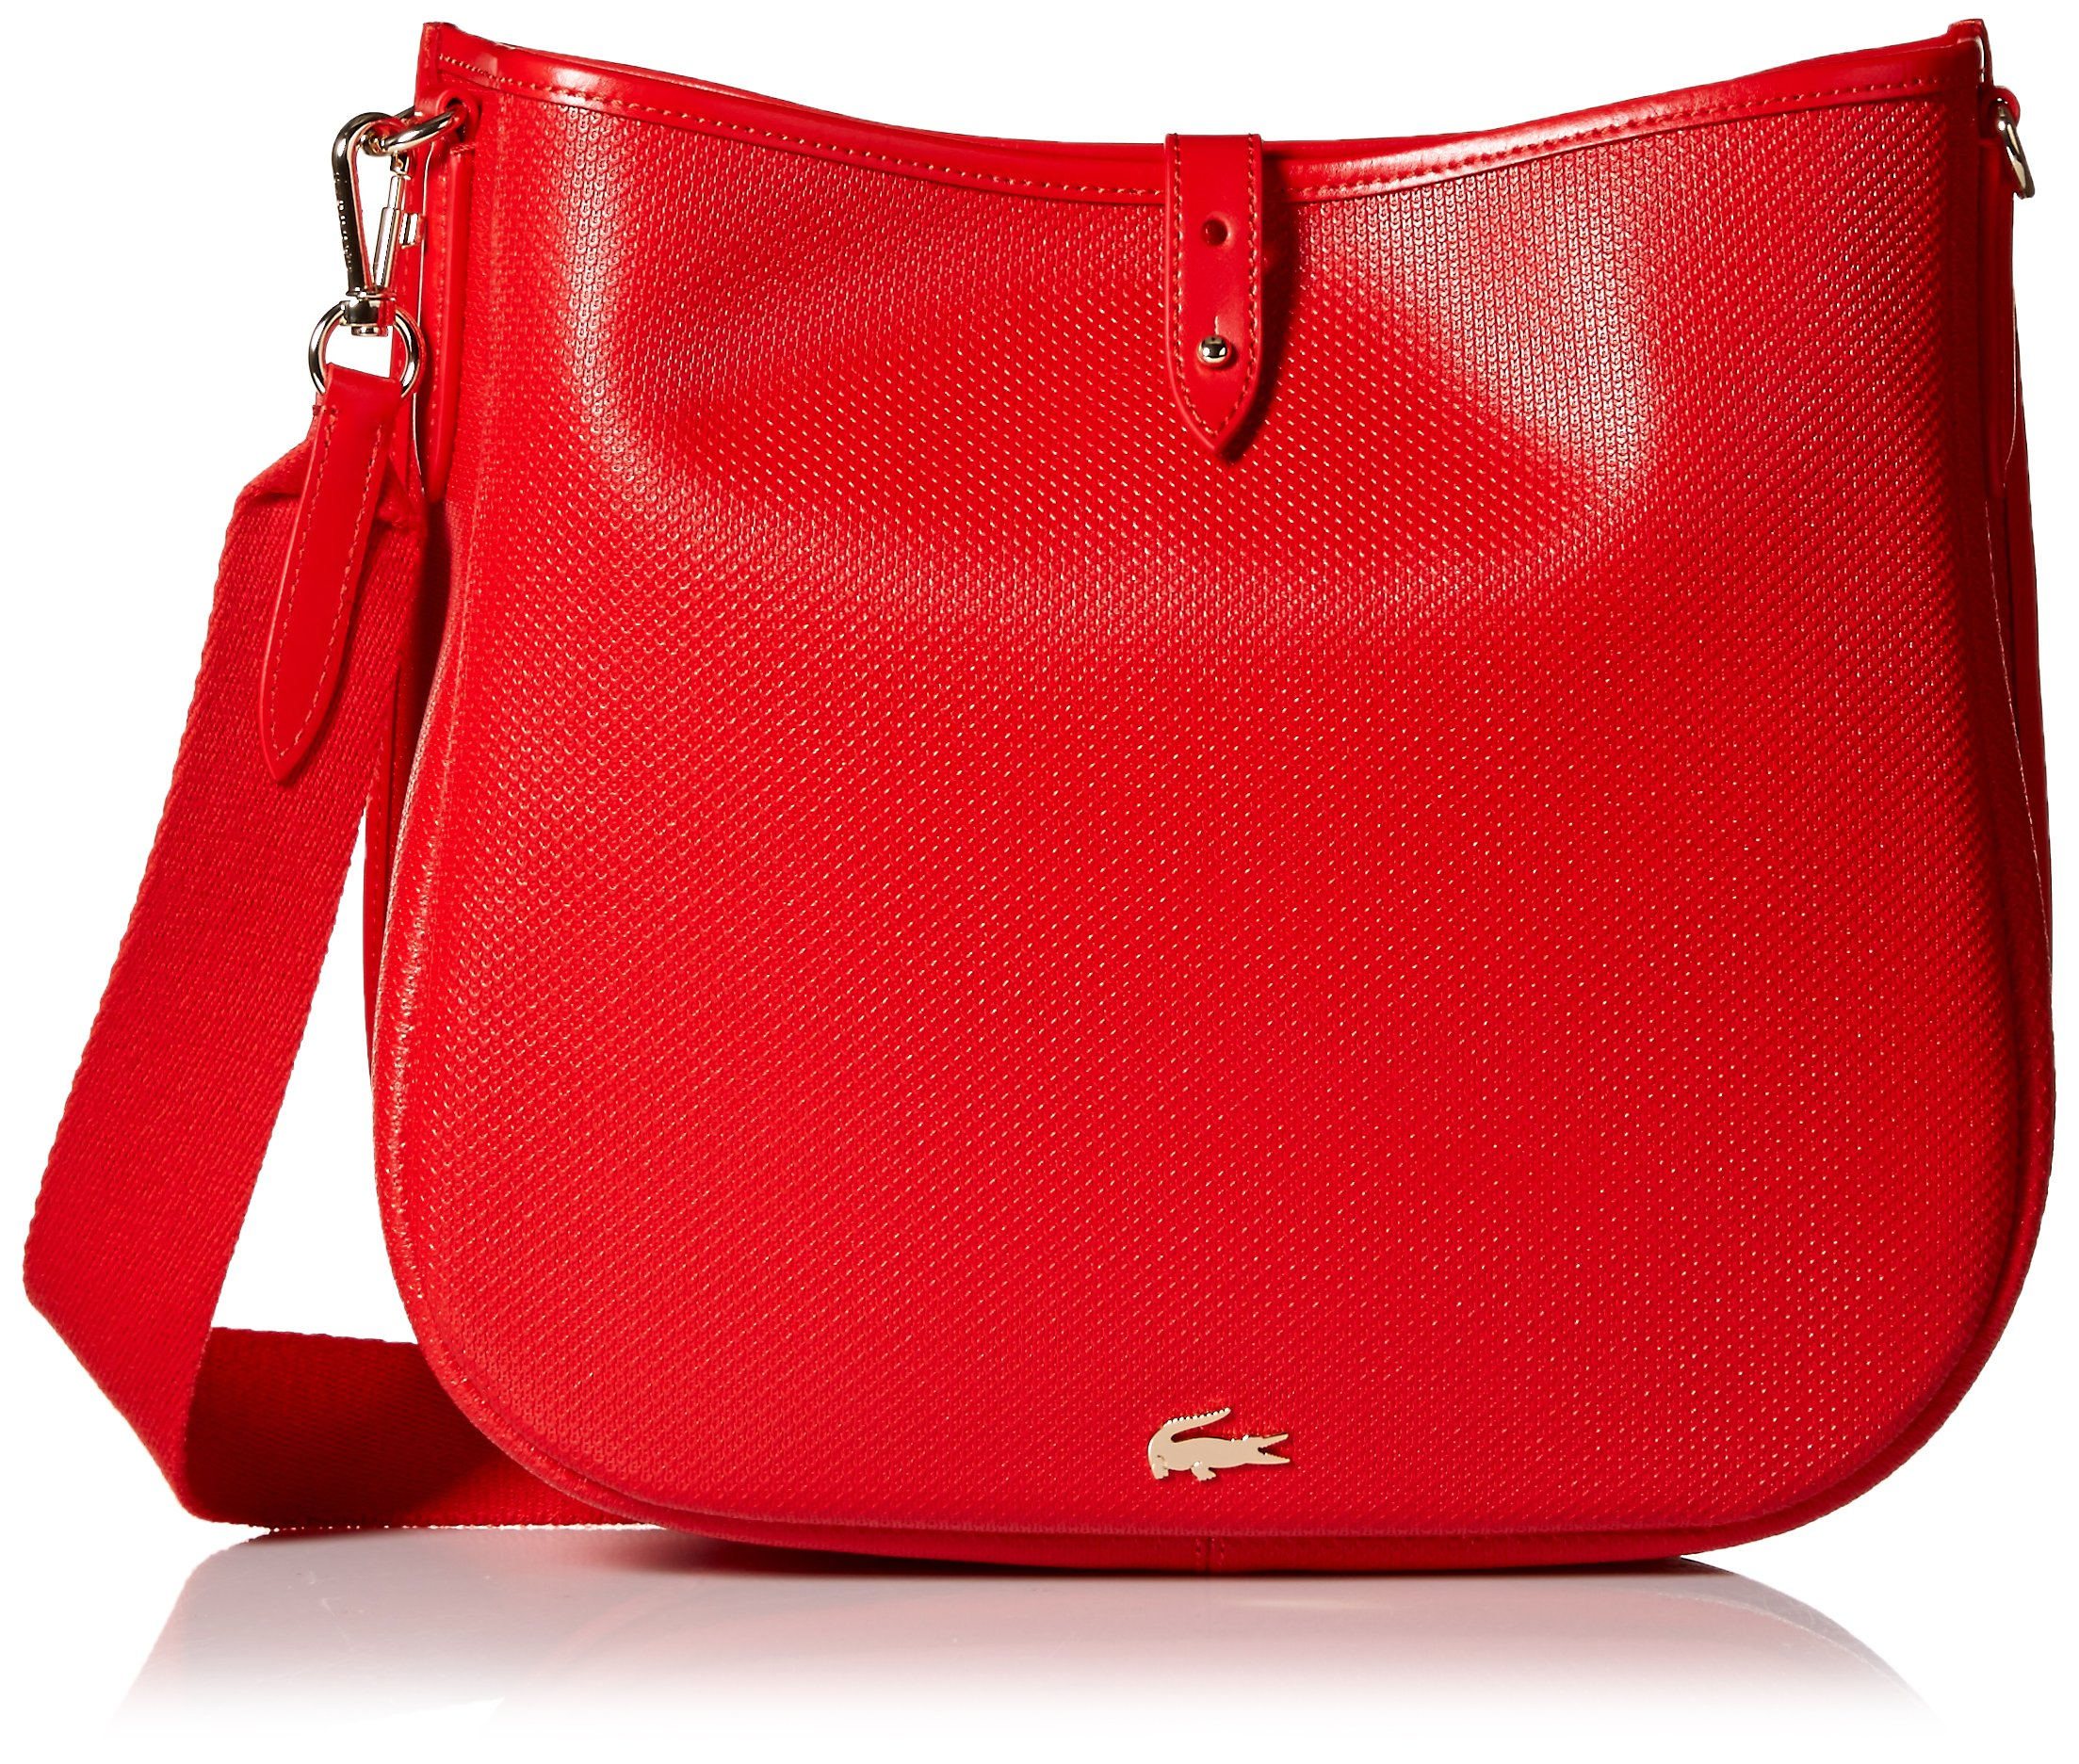 Lacoste Hobo Bag, Nf2118ce, High Risk Red